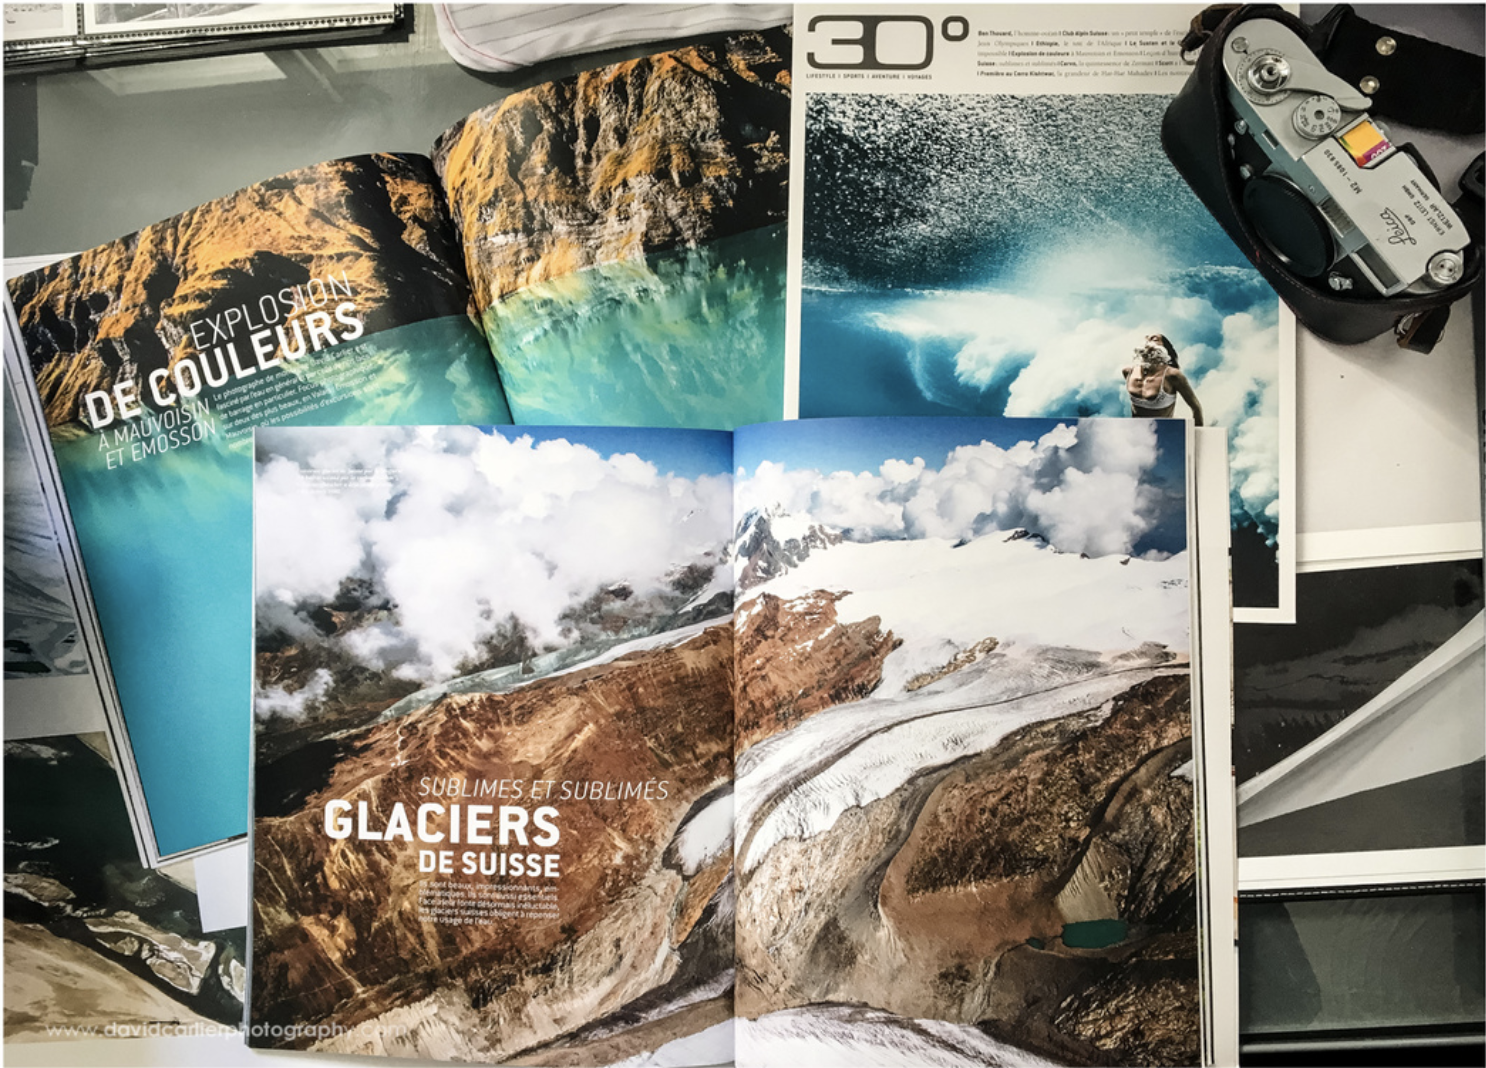 Copies of Swiss 30° that feature David's photos.